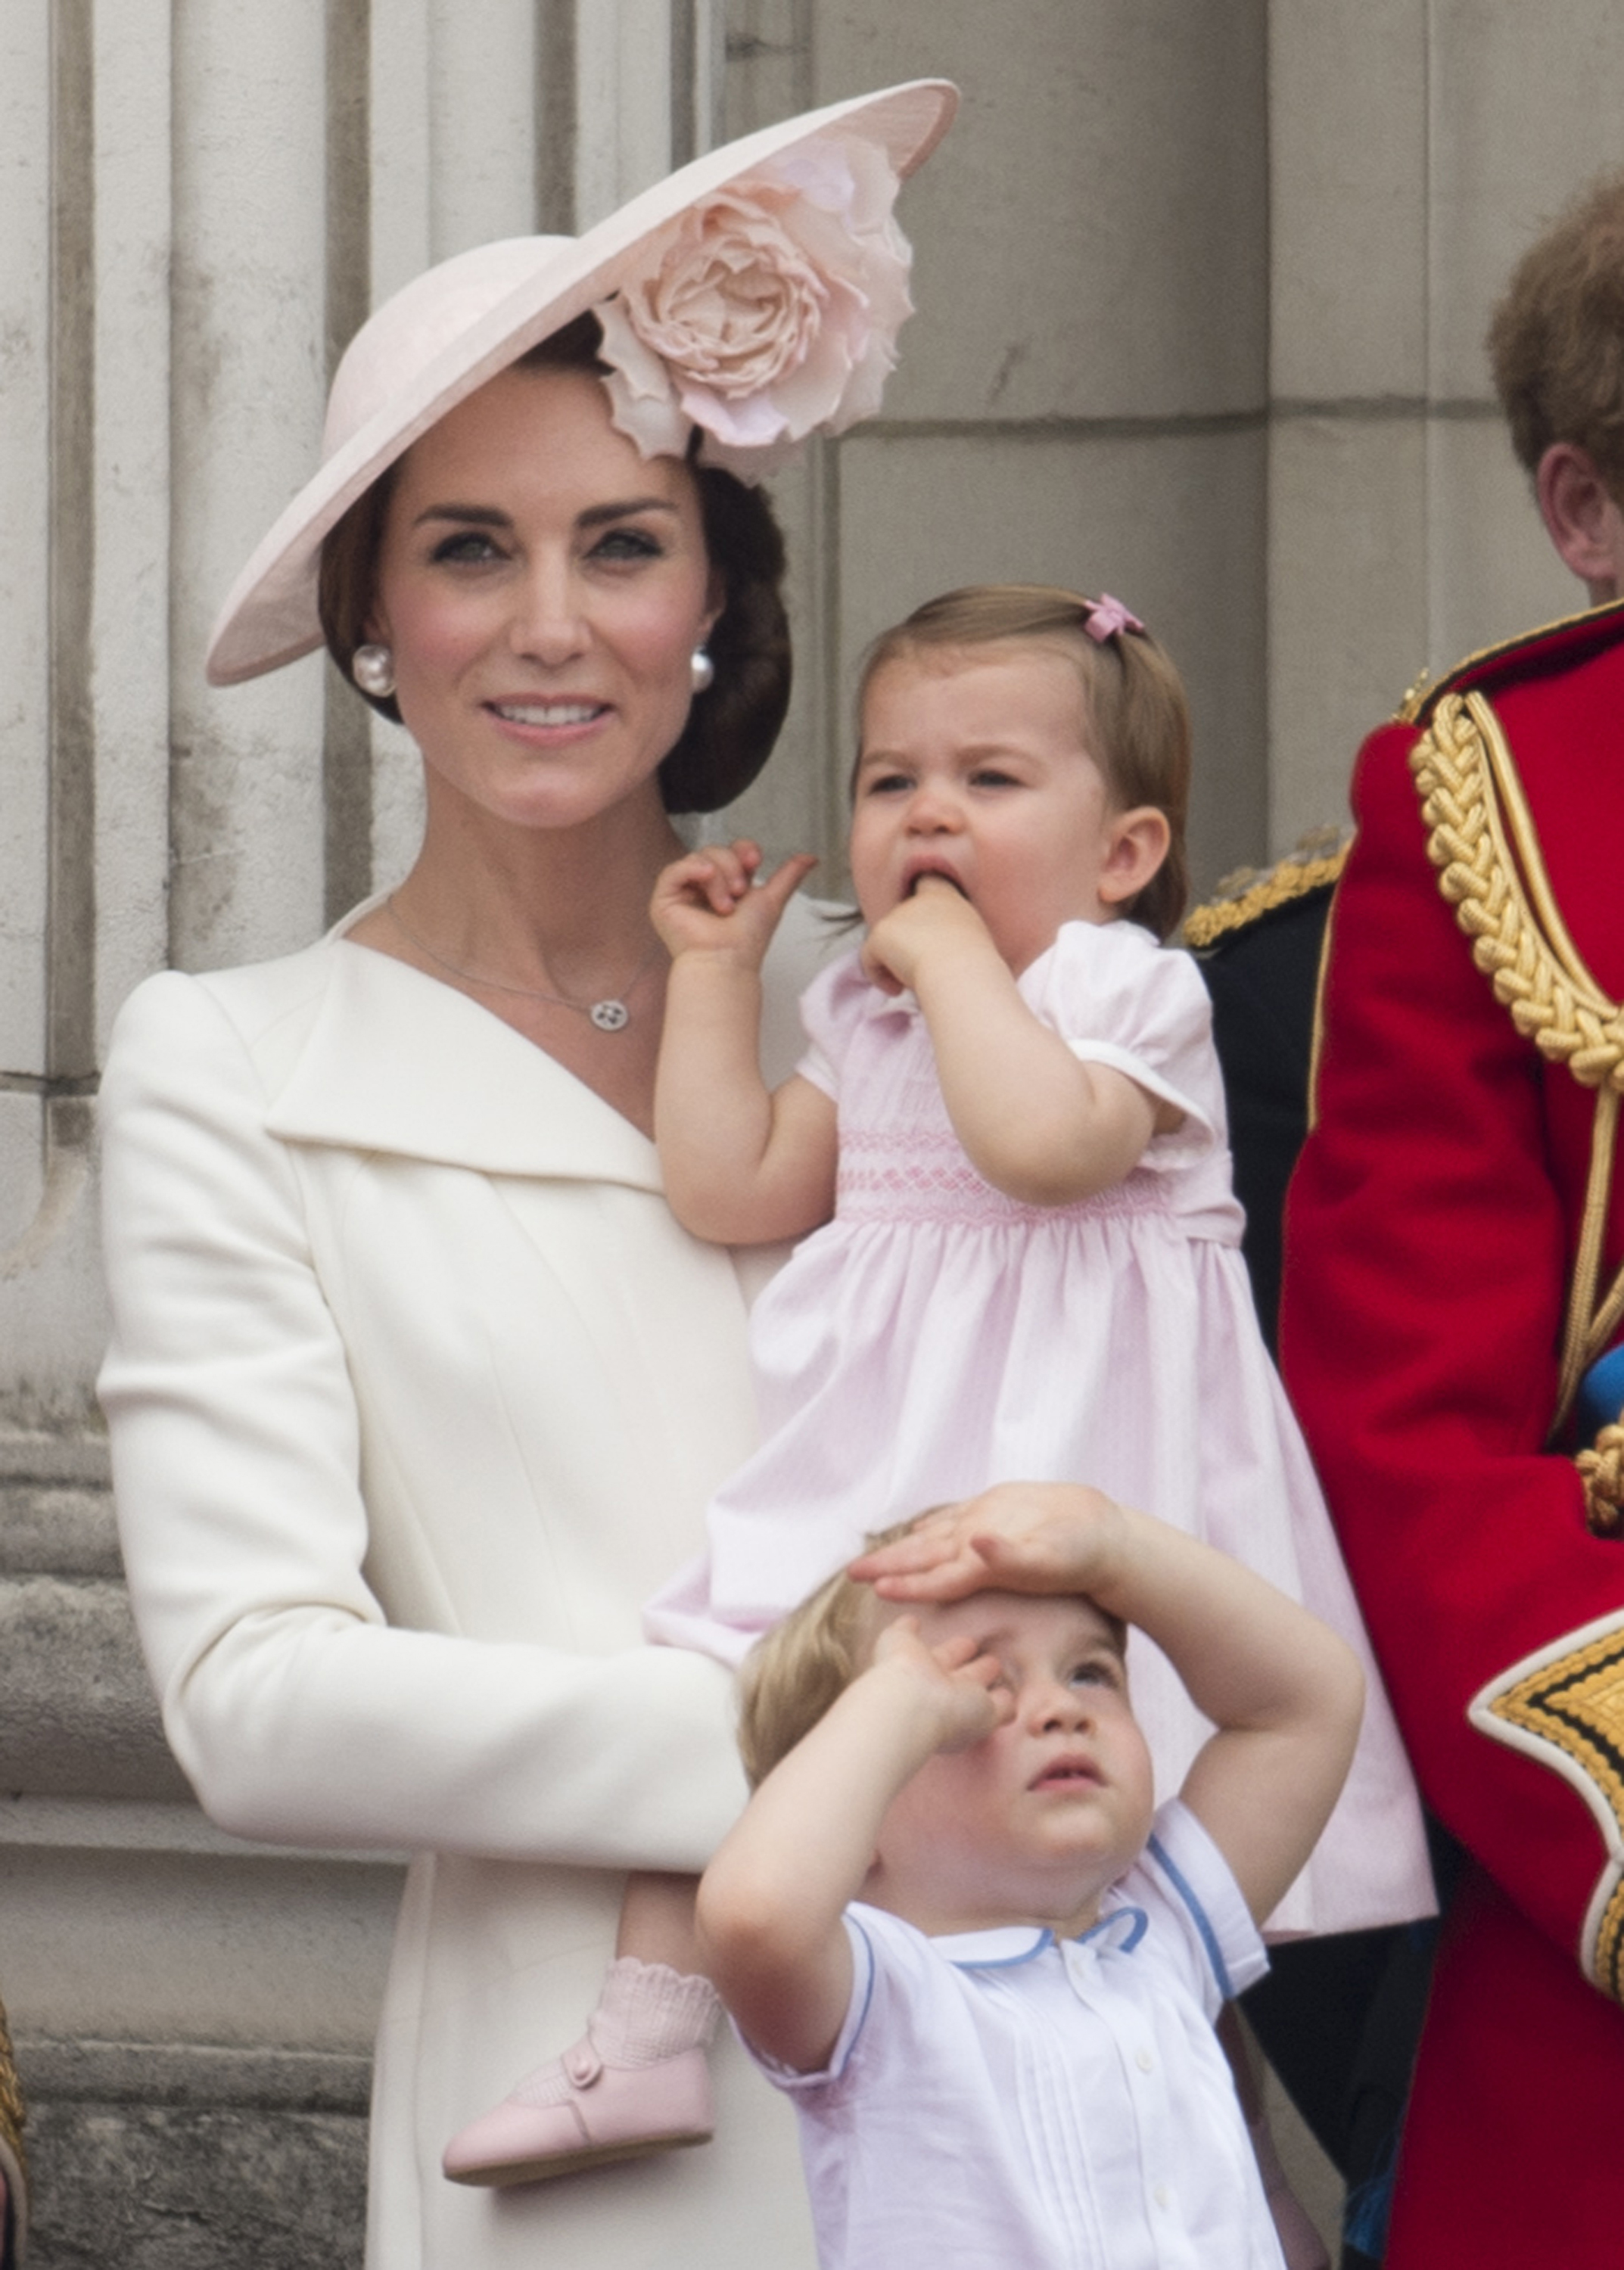 Catherine, Duchess of Cambridge with Princess Charlotte of Cambridge and Prince George of Cambridge during the Trooping the Colour, this year marking the Queen's 90th birthday at The Mall in London on June 11, 2016.